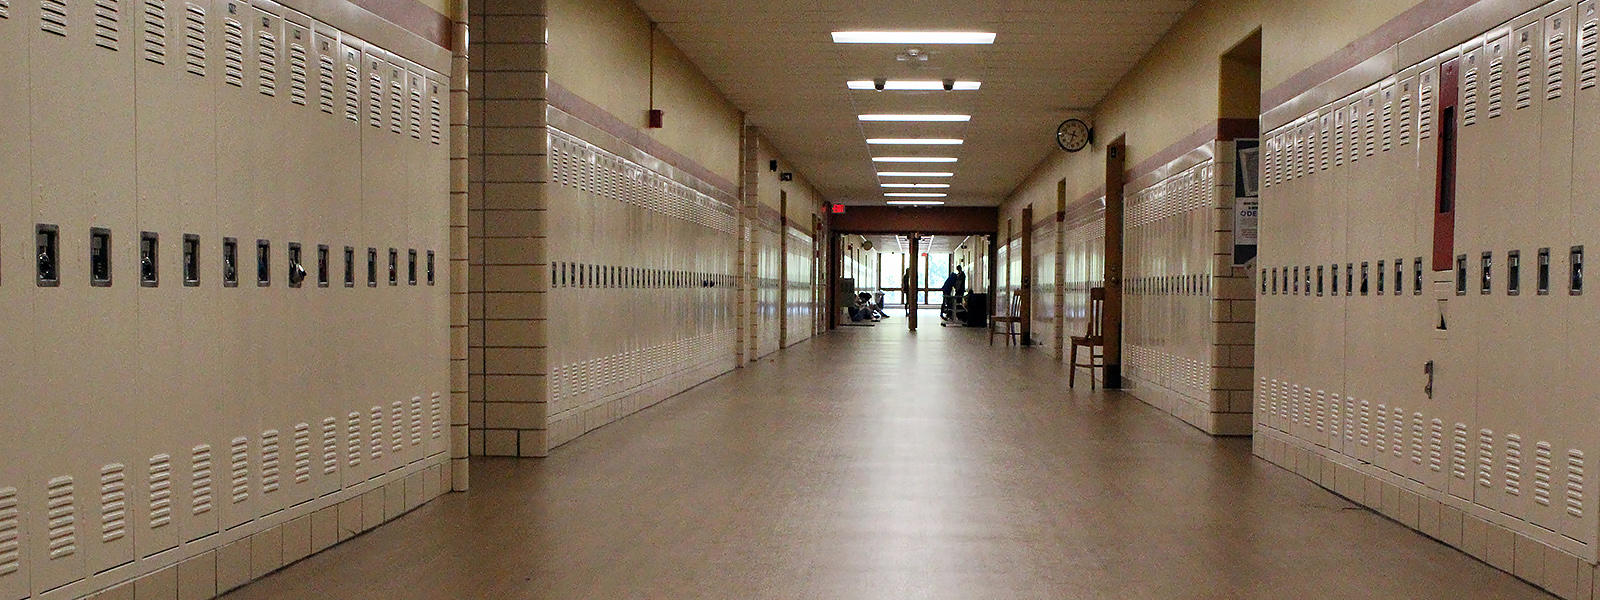 A hallway at Elmwood Park High School is empty during class time.